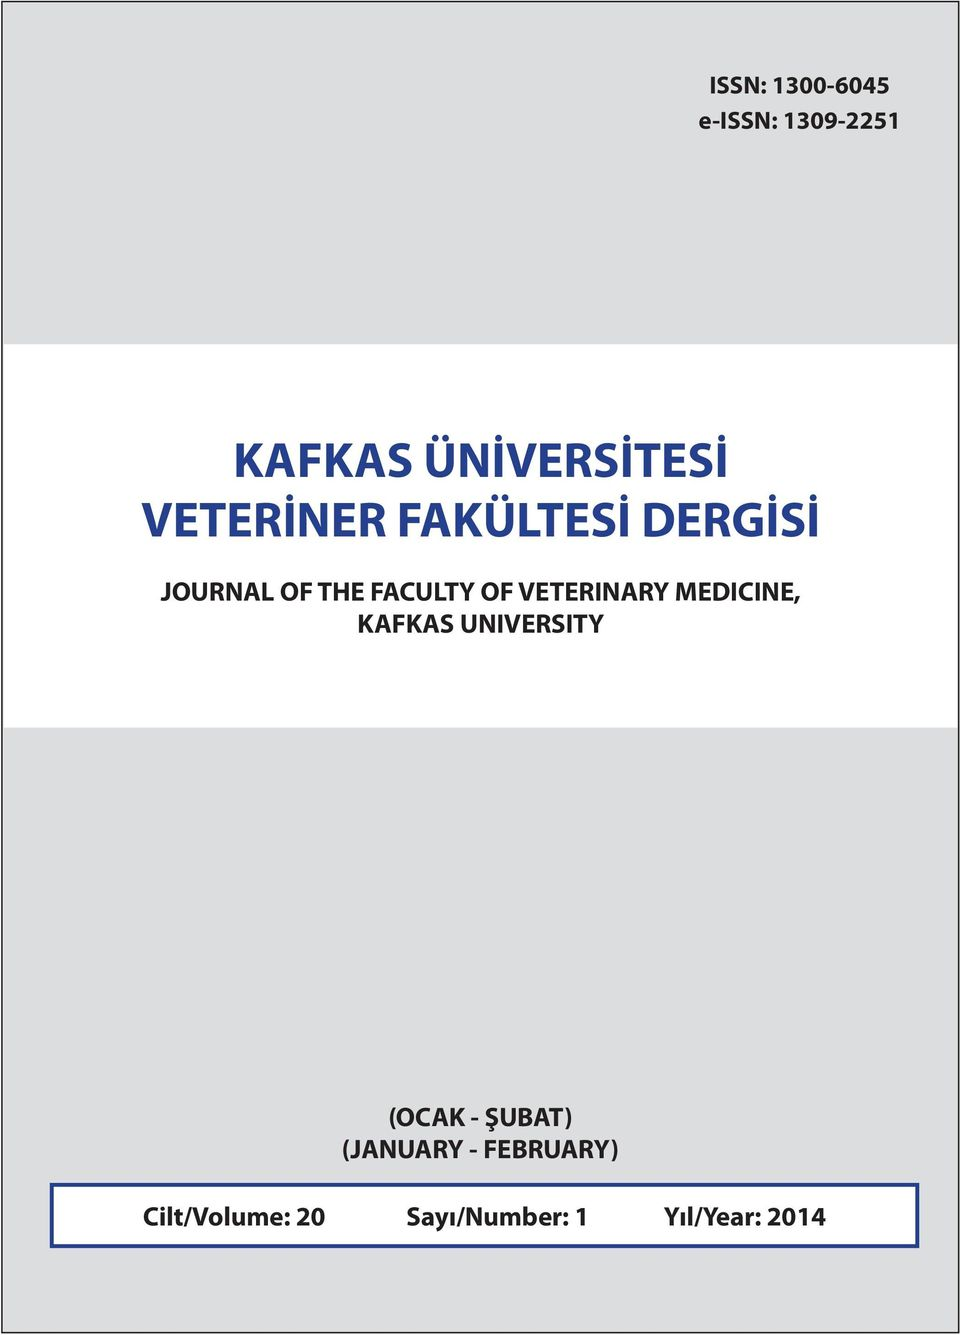 VETERINARY MEDICINE, KAFKAS UNIVERSITY (OCAK - ŞUBAT)